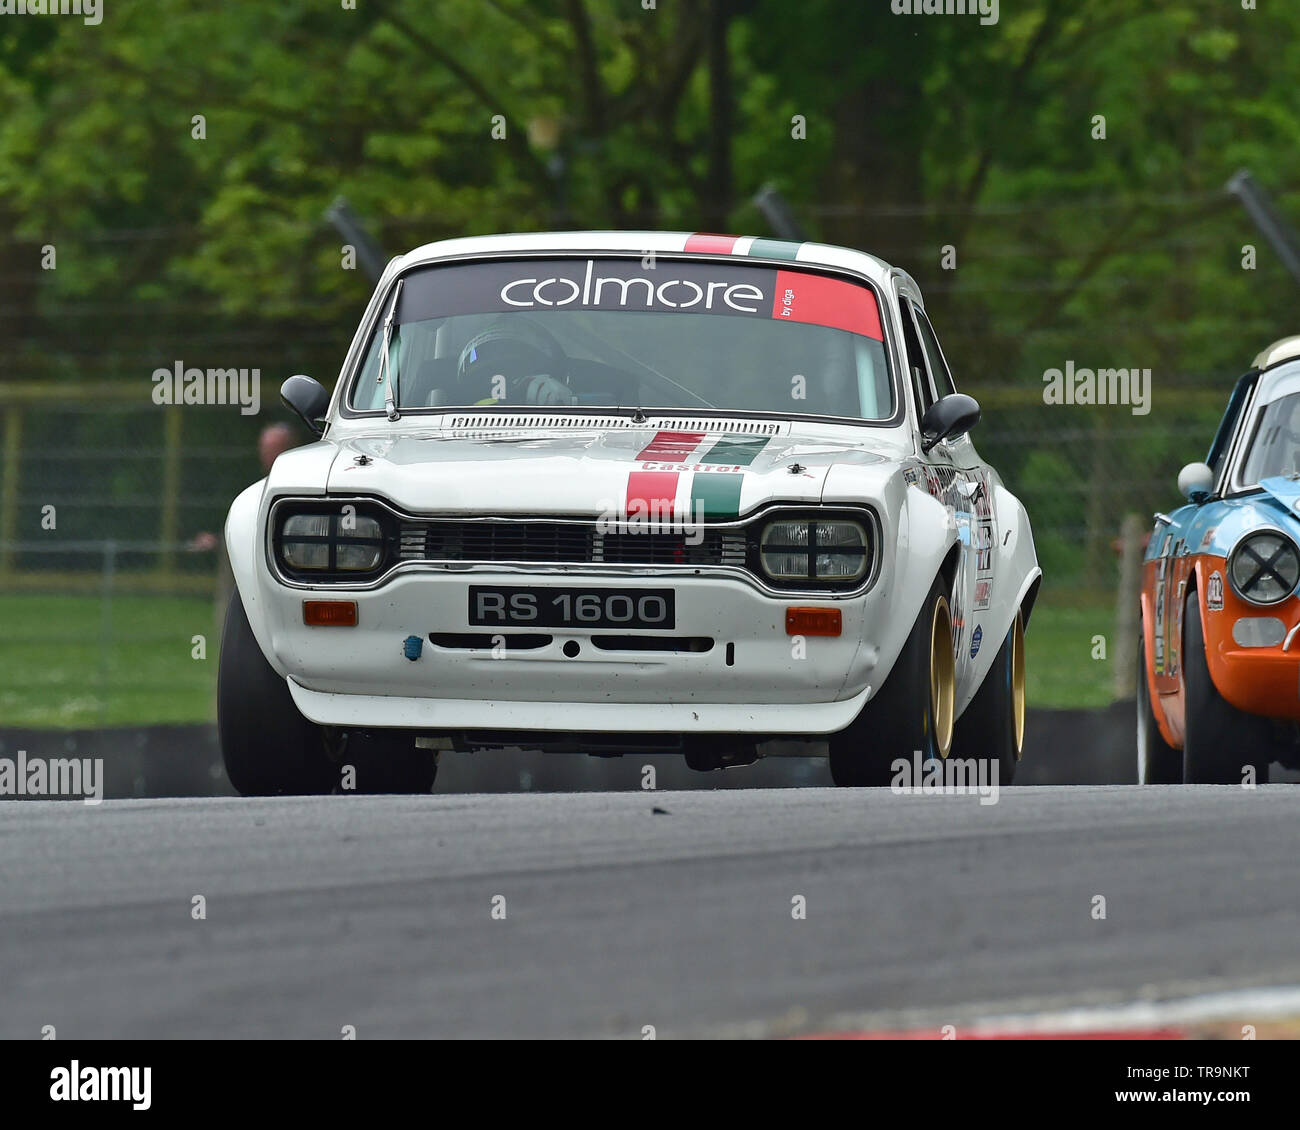 Ford Escort Rs1600 Stock Photos & Ford Escort Rs1600 Stock Images